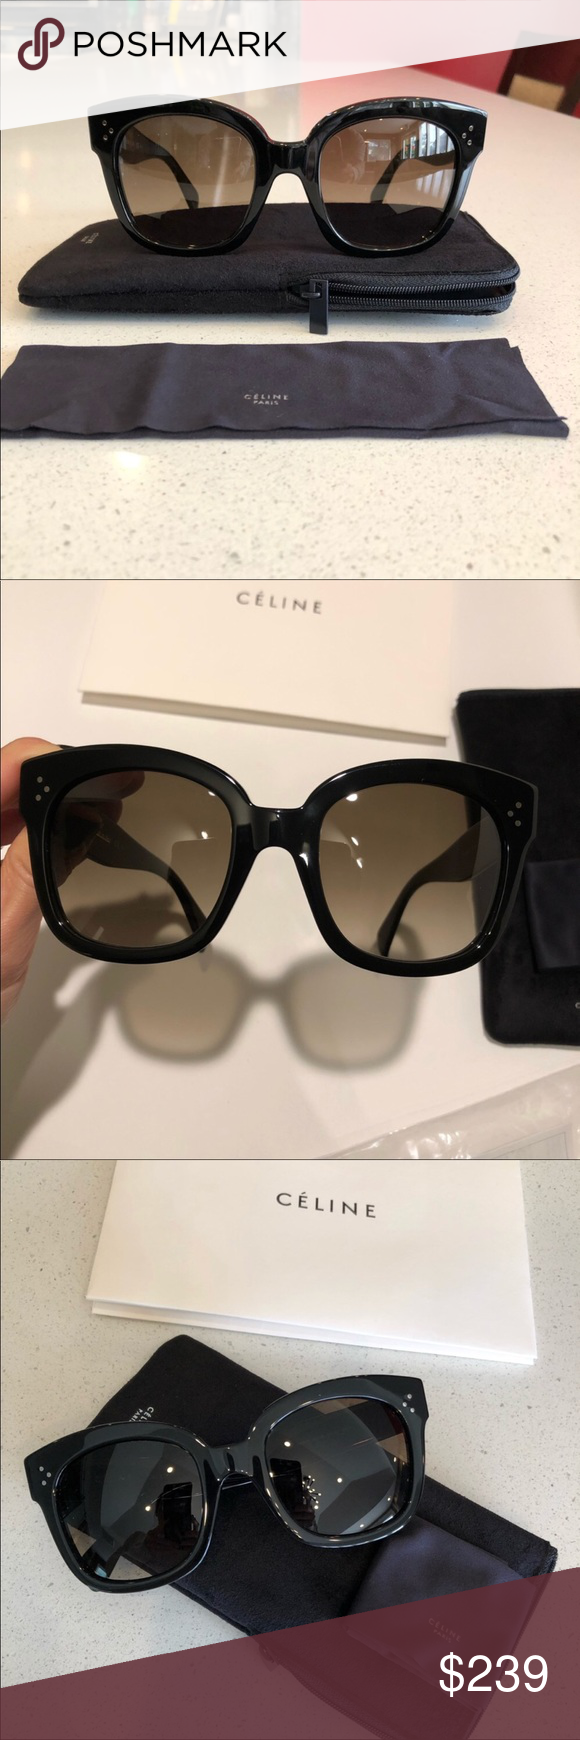 bb510c0d50a55 Celine Audrey sunglasses New Celine Audrey 41805 S sunglasses - black brown  shaded 100% New and Authentic. Comes with all accessories. Celine  Accessories ...